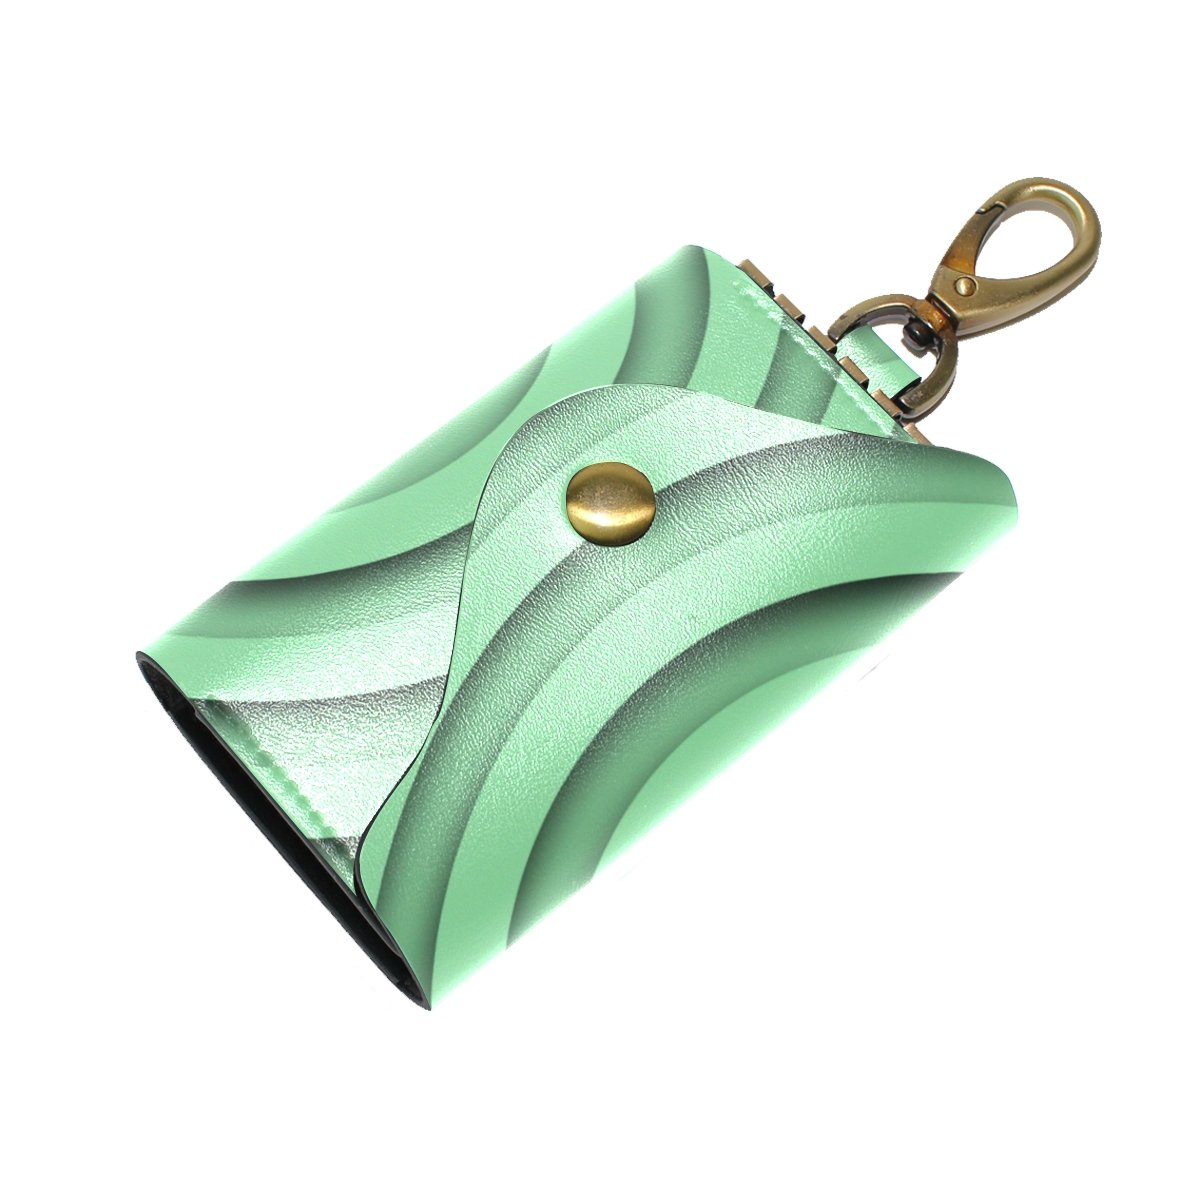 DEYYA Concentric Green Rings Leather Key Case Wallets Unisex Keychain Key Holder with 6 Hooks Snap Closure